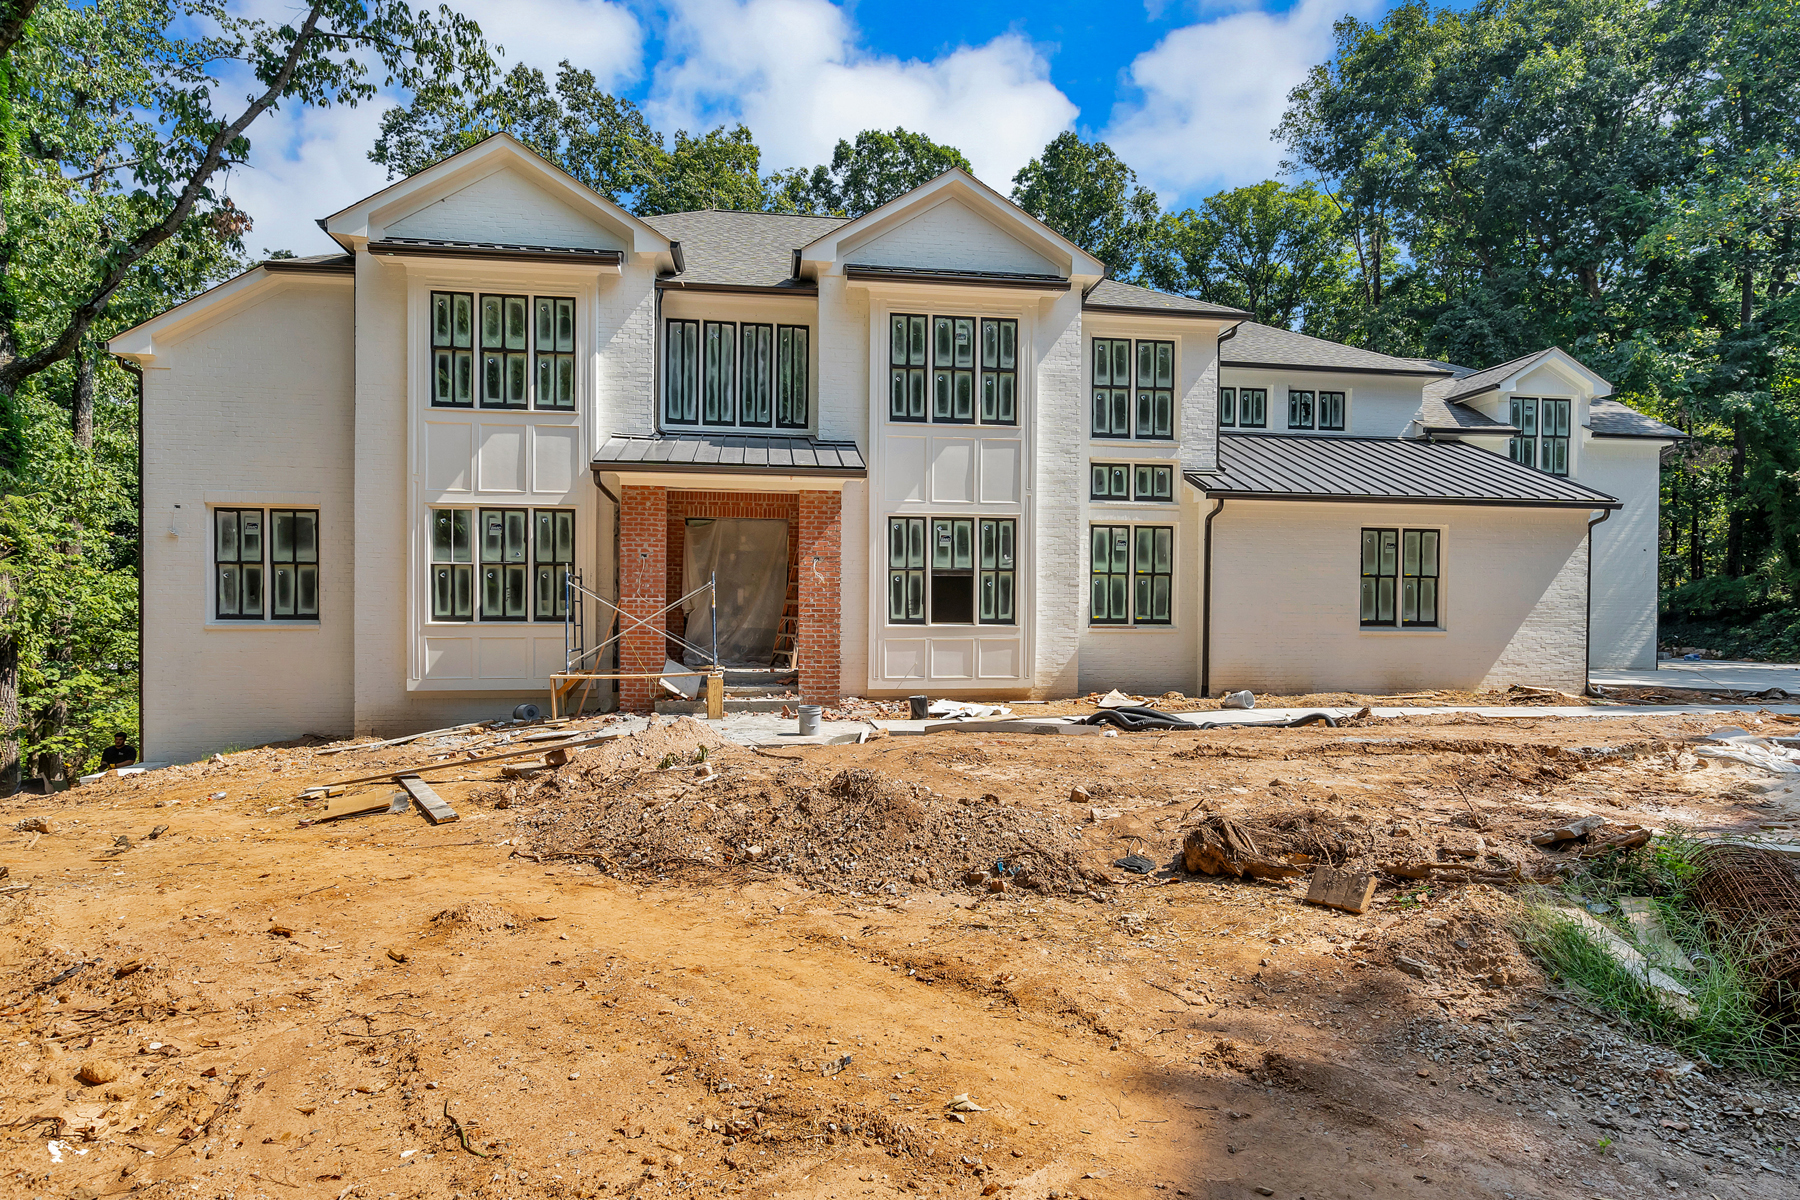 Single Family Homes for Sale at New Painted Brick Traditional on 1.5+/- Acres Inside I-285 5571 Arundel Drive Sandy Springs, Georgia 30327 United States